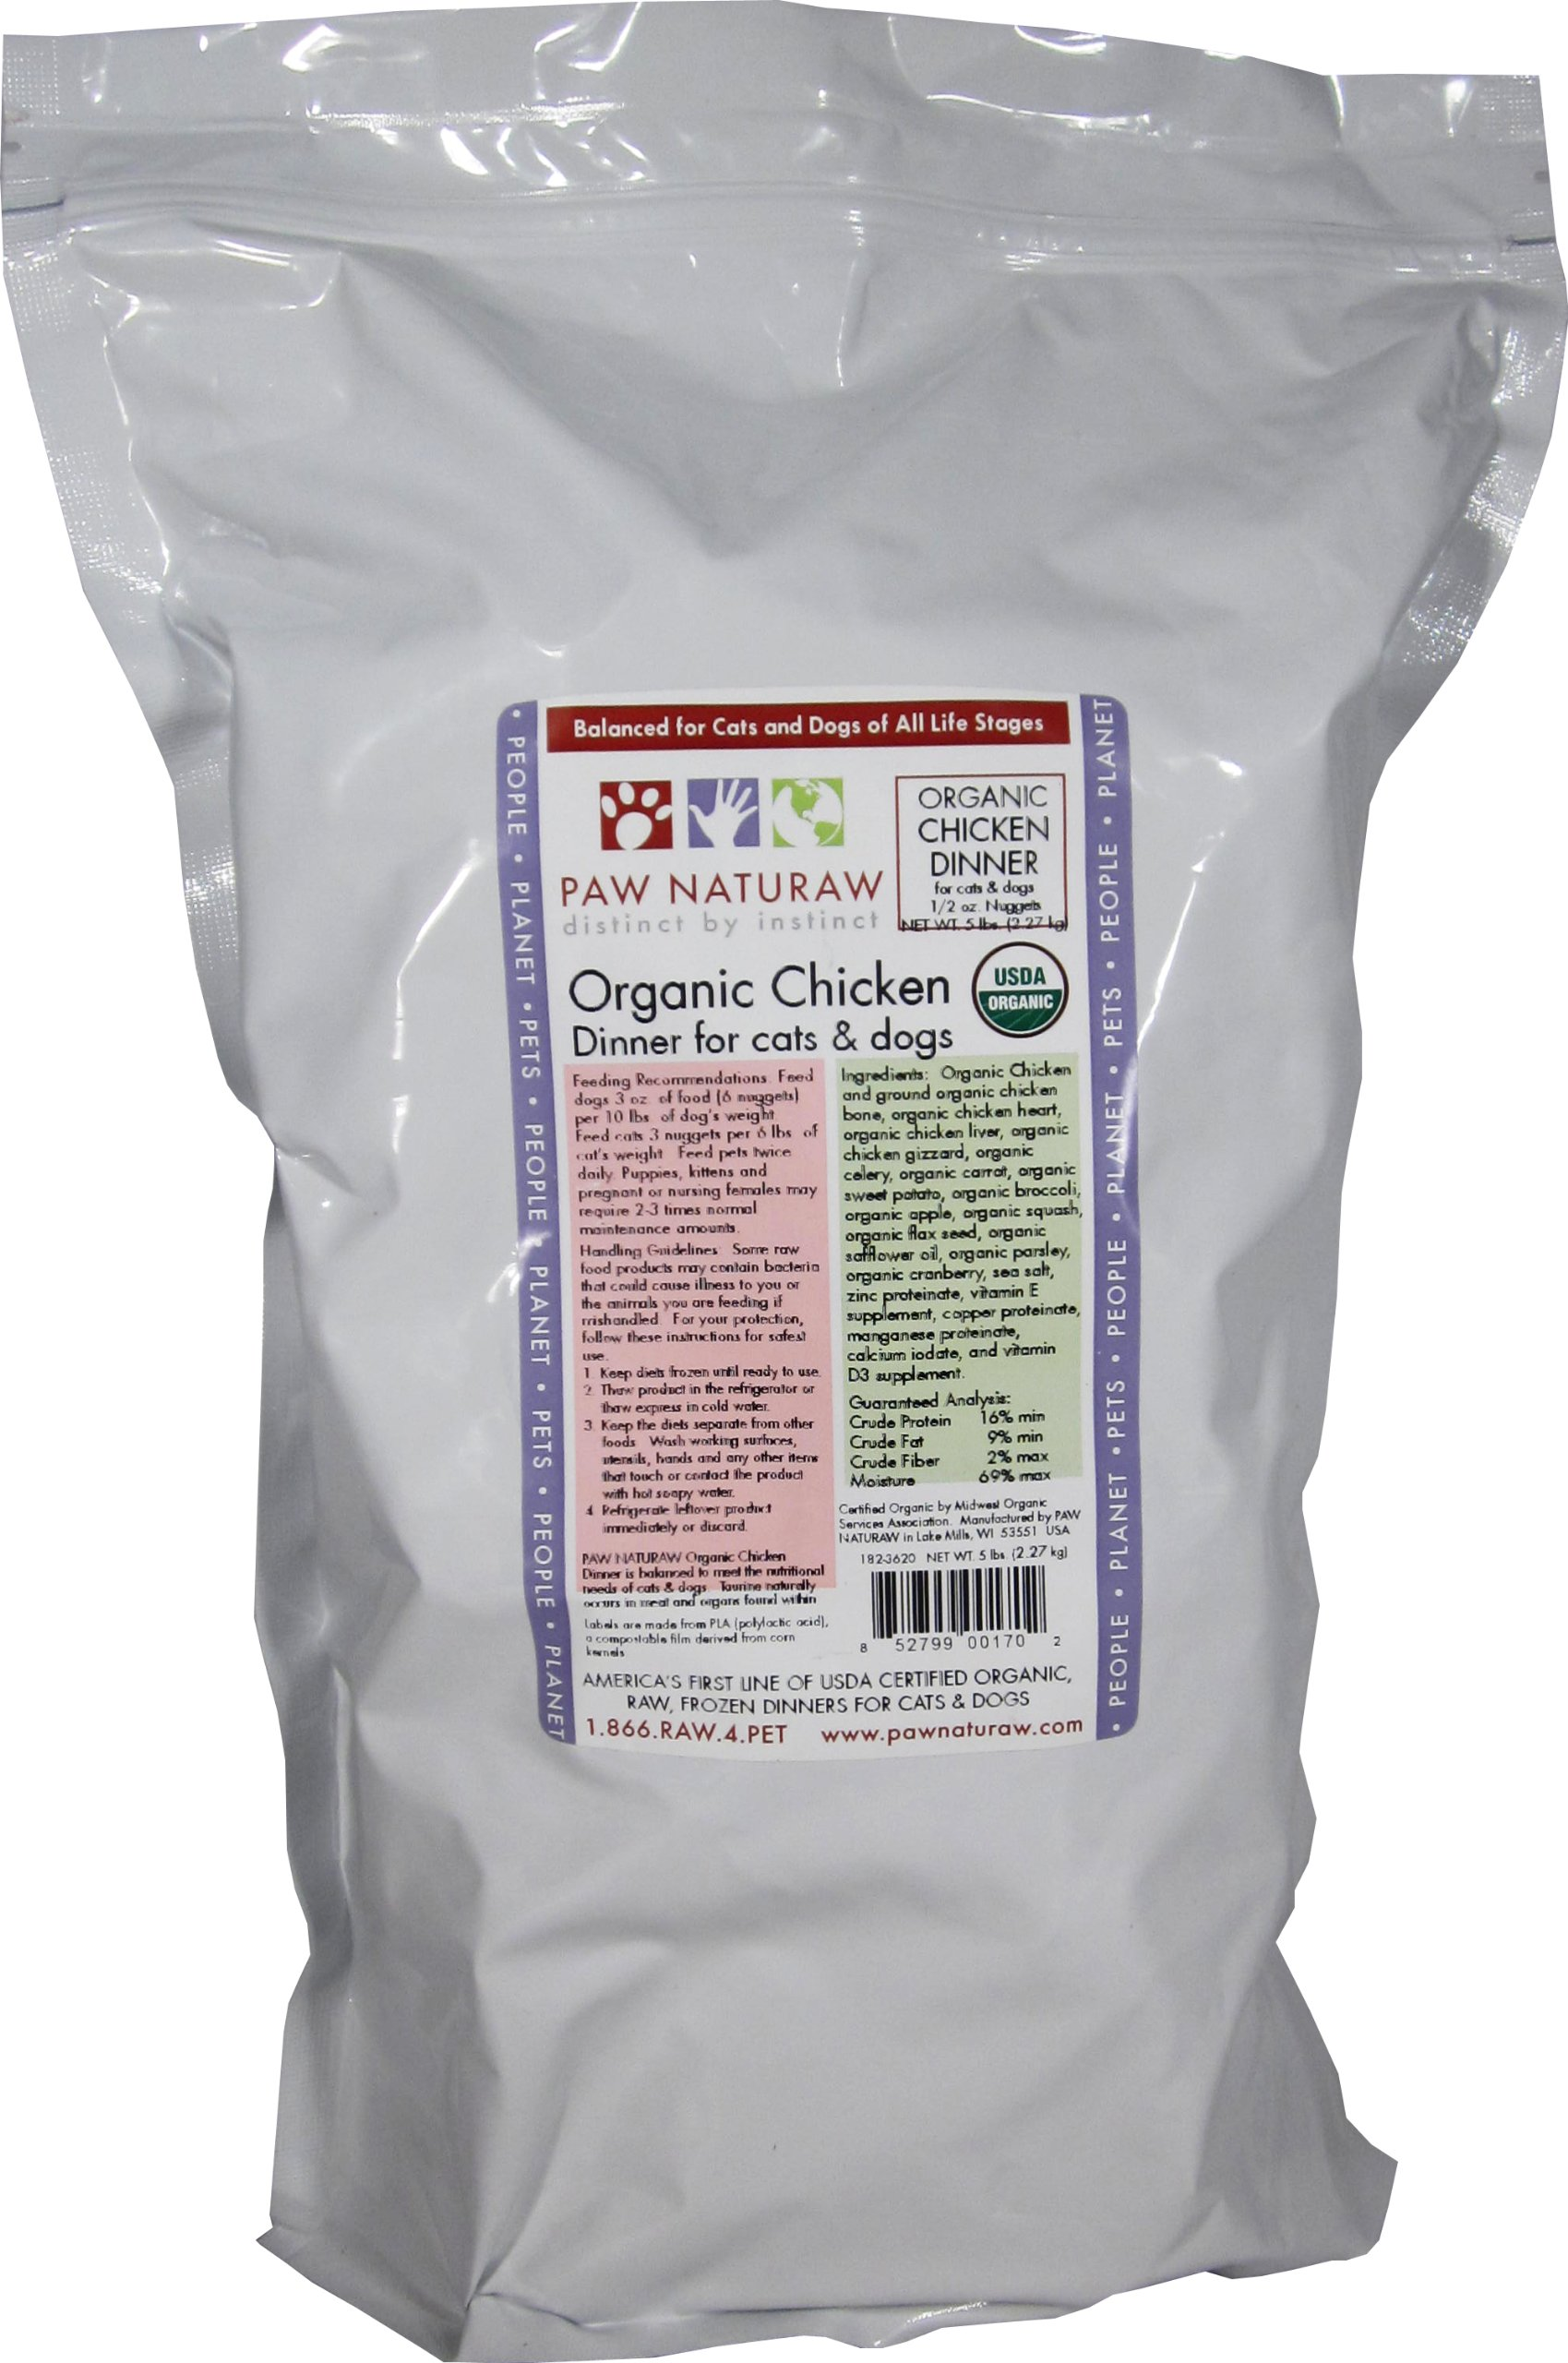 Paw Naturaw Organic Dinner for Cats and Dogs, nuggets, 80-Ounce Bags (Pack of 5) by PAW NATURAW distinct by instinct